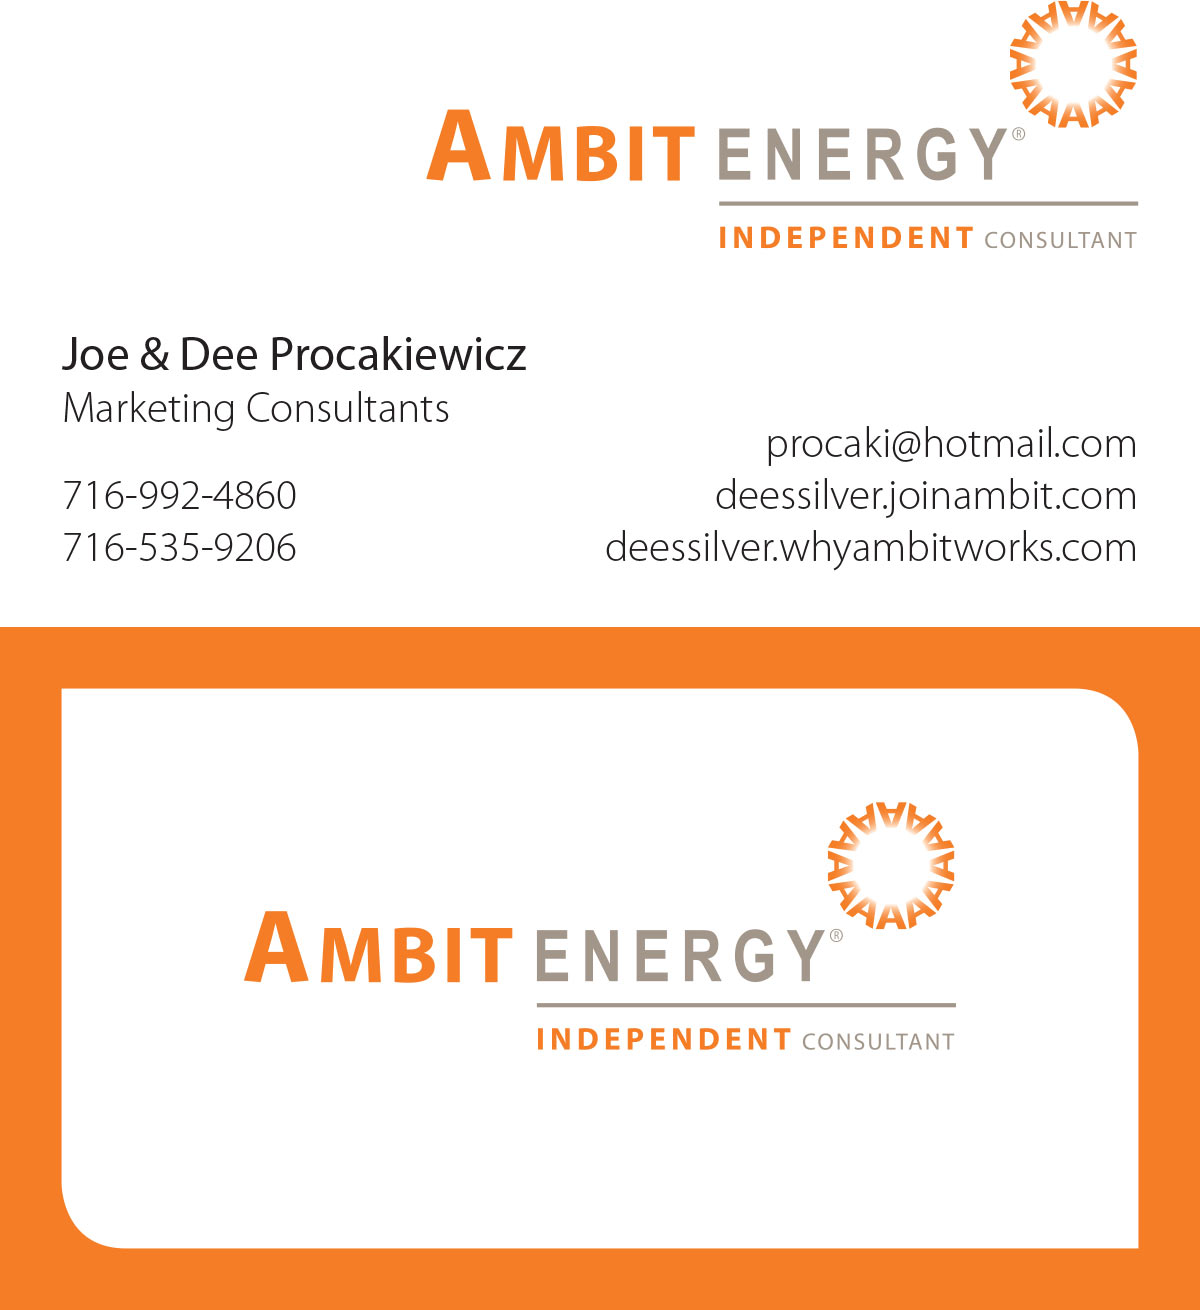 Ambit business cards ambit business card design 3 2 x 35 business business cards evenhouse printing ambit energy business card template wajeb